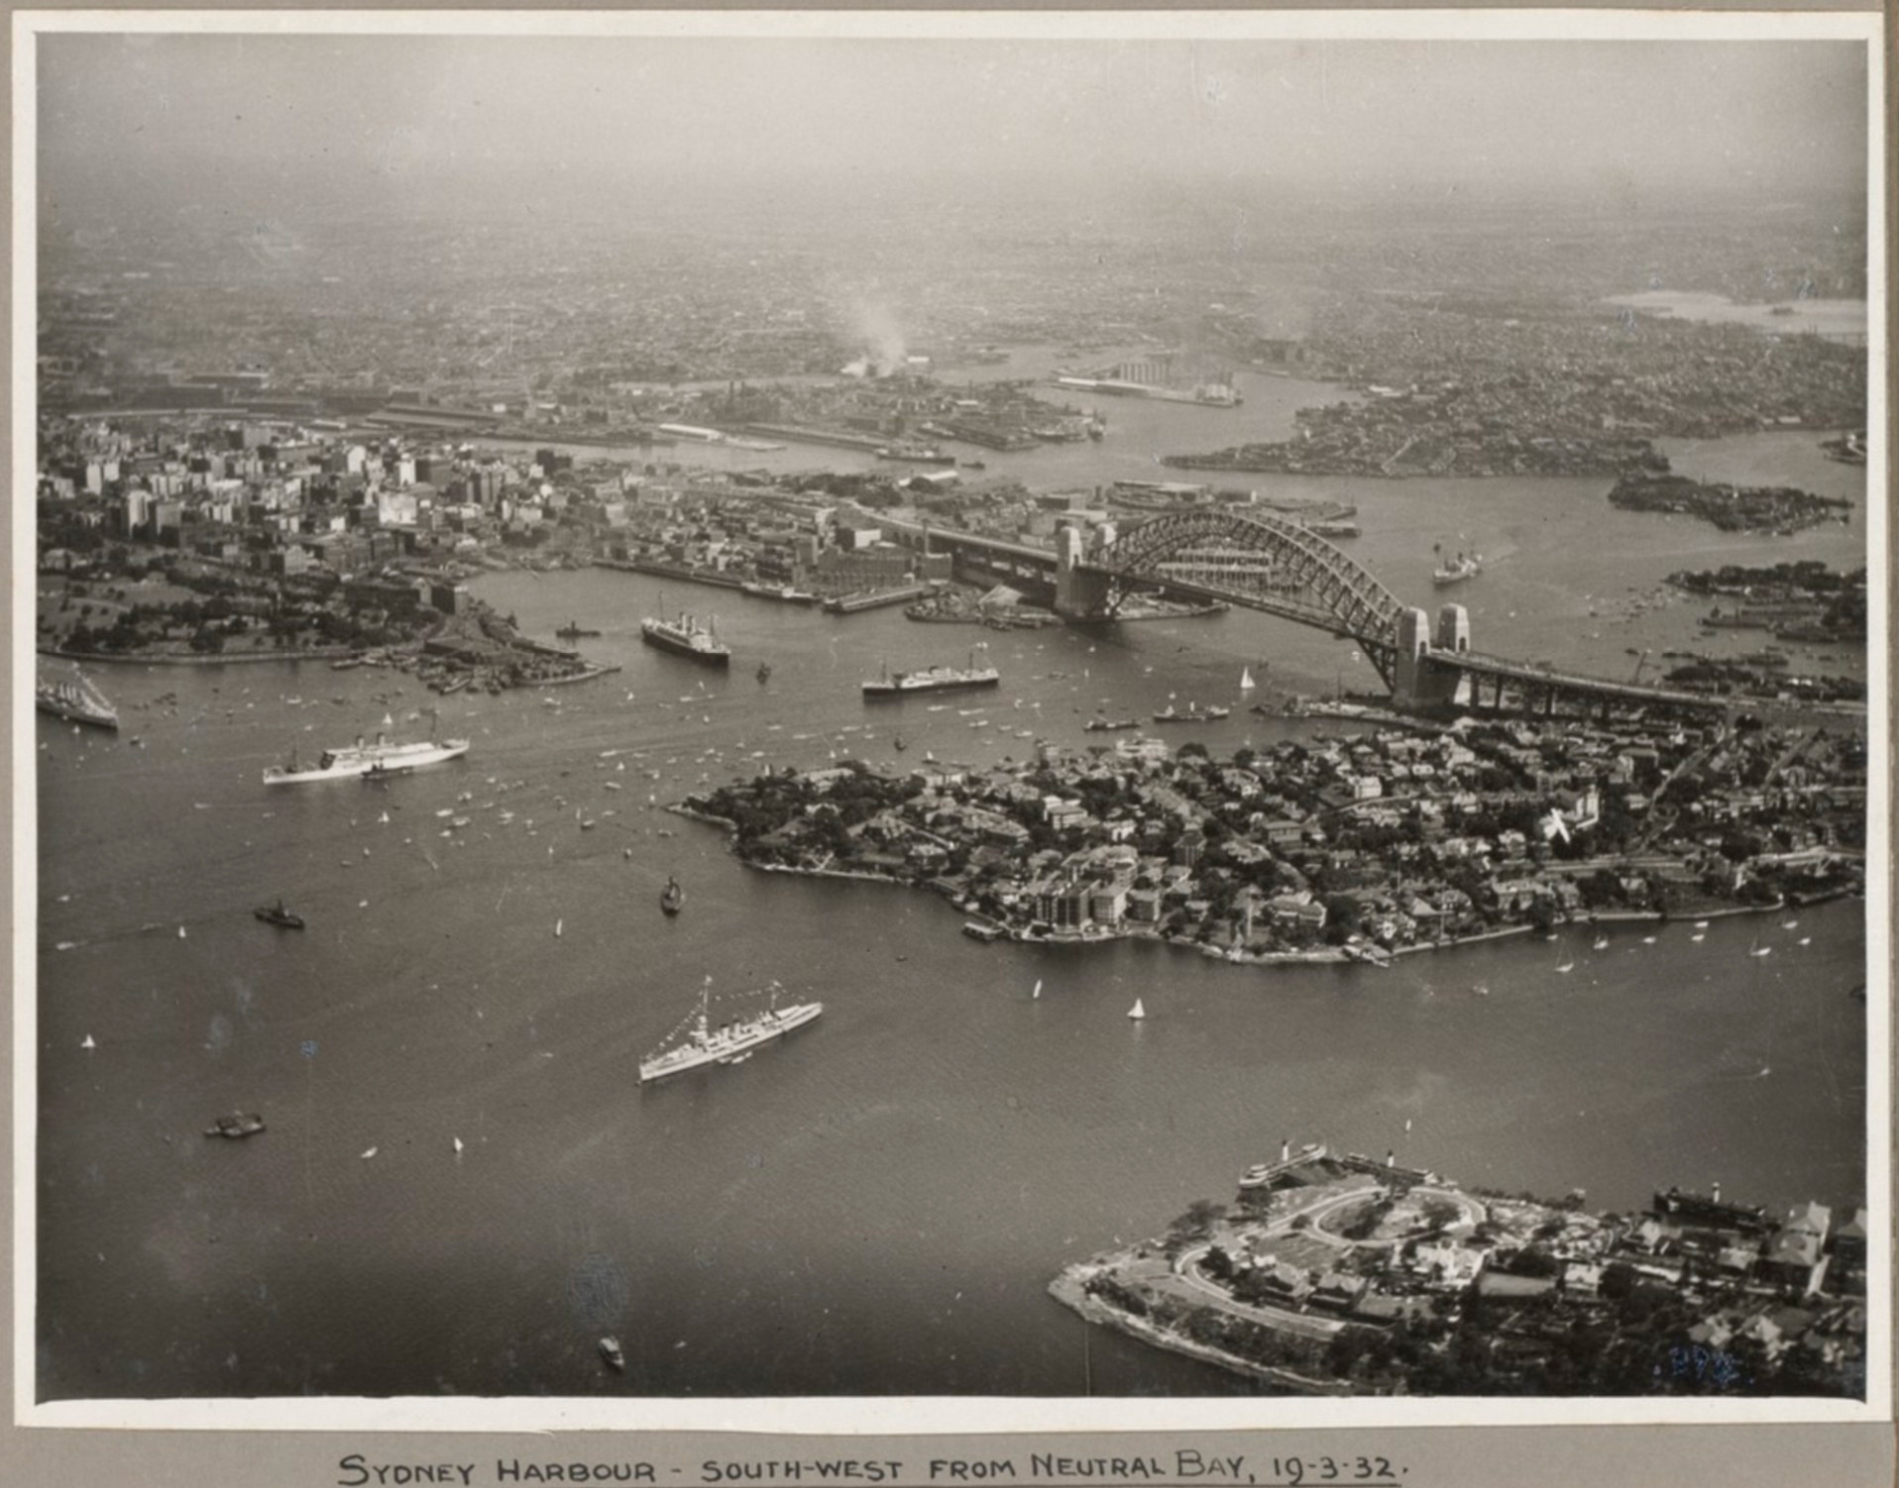 200 years of Sydney - a collection of historic photos